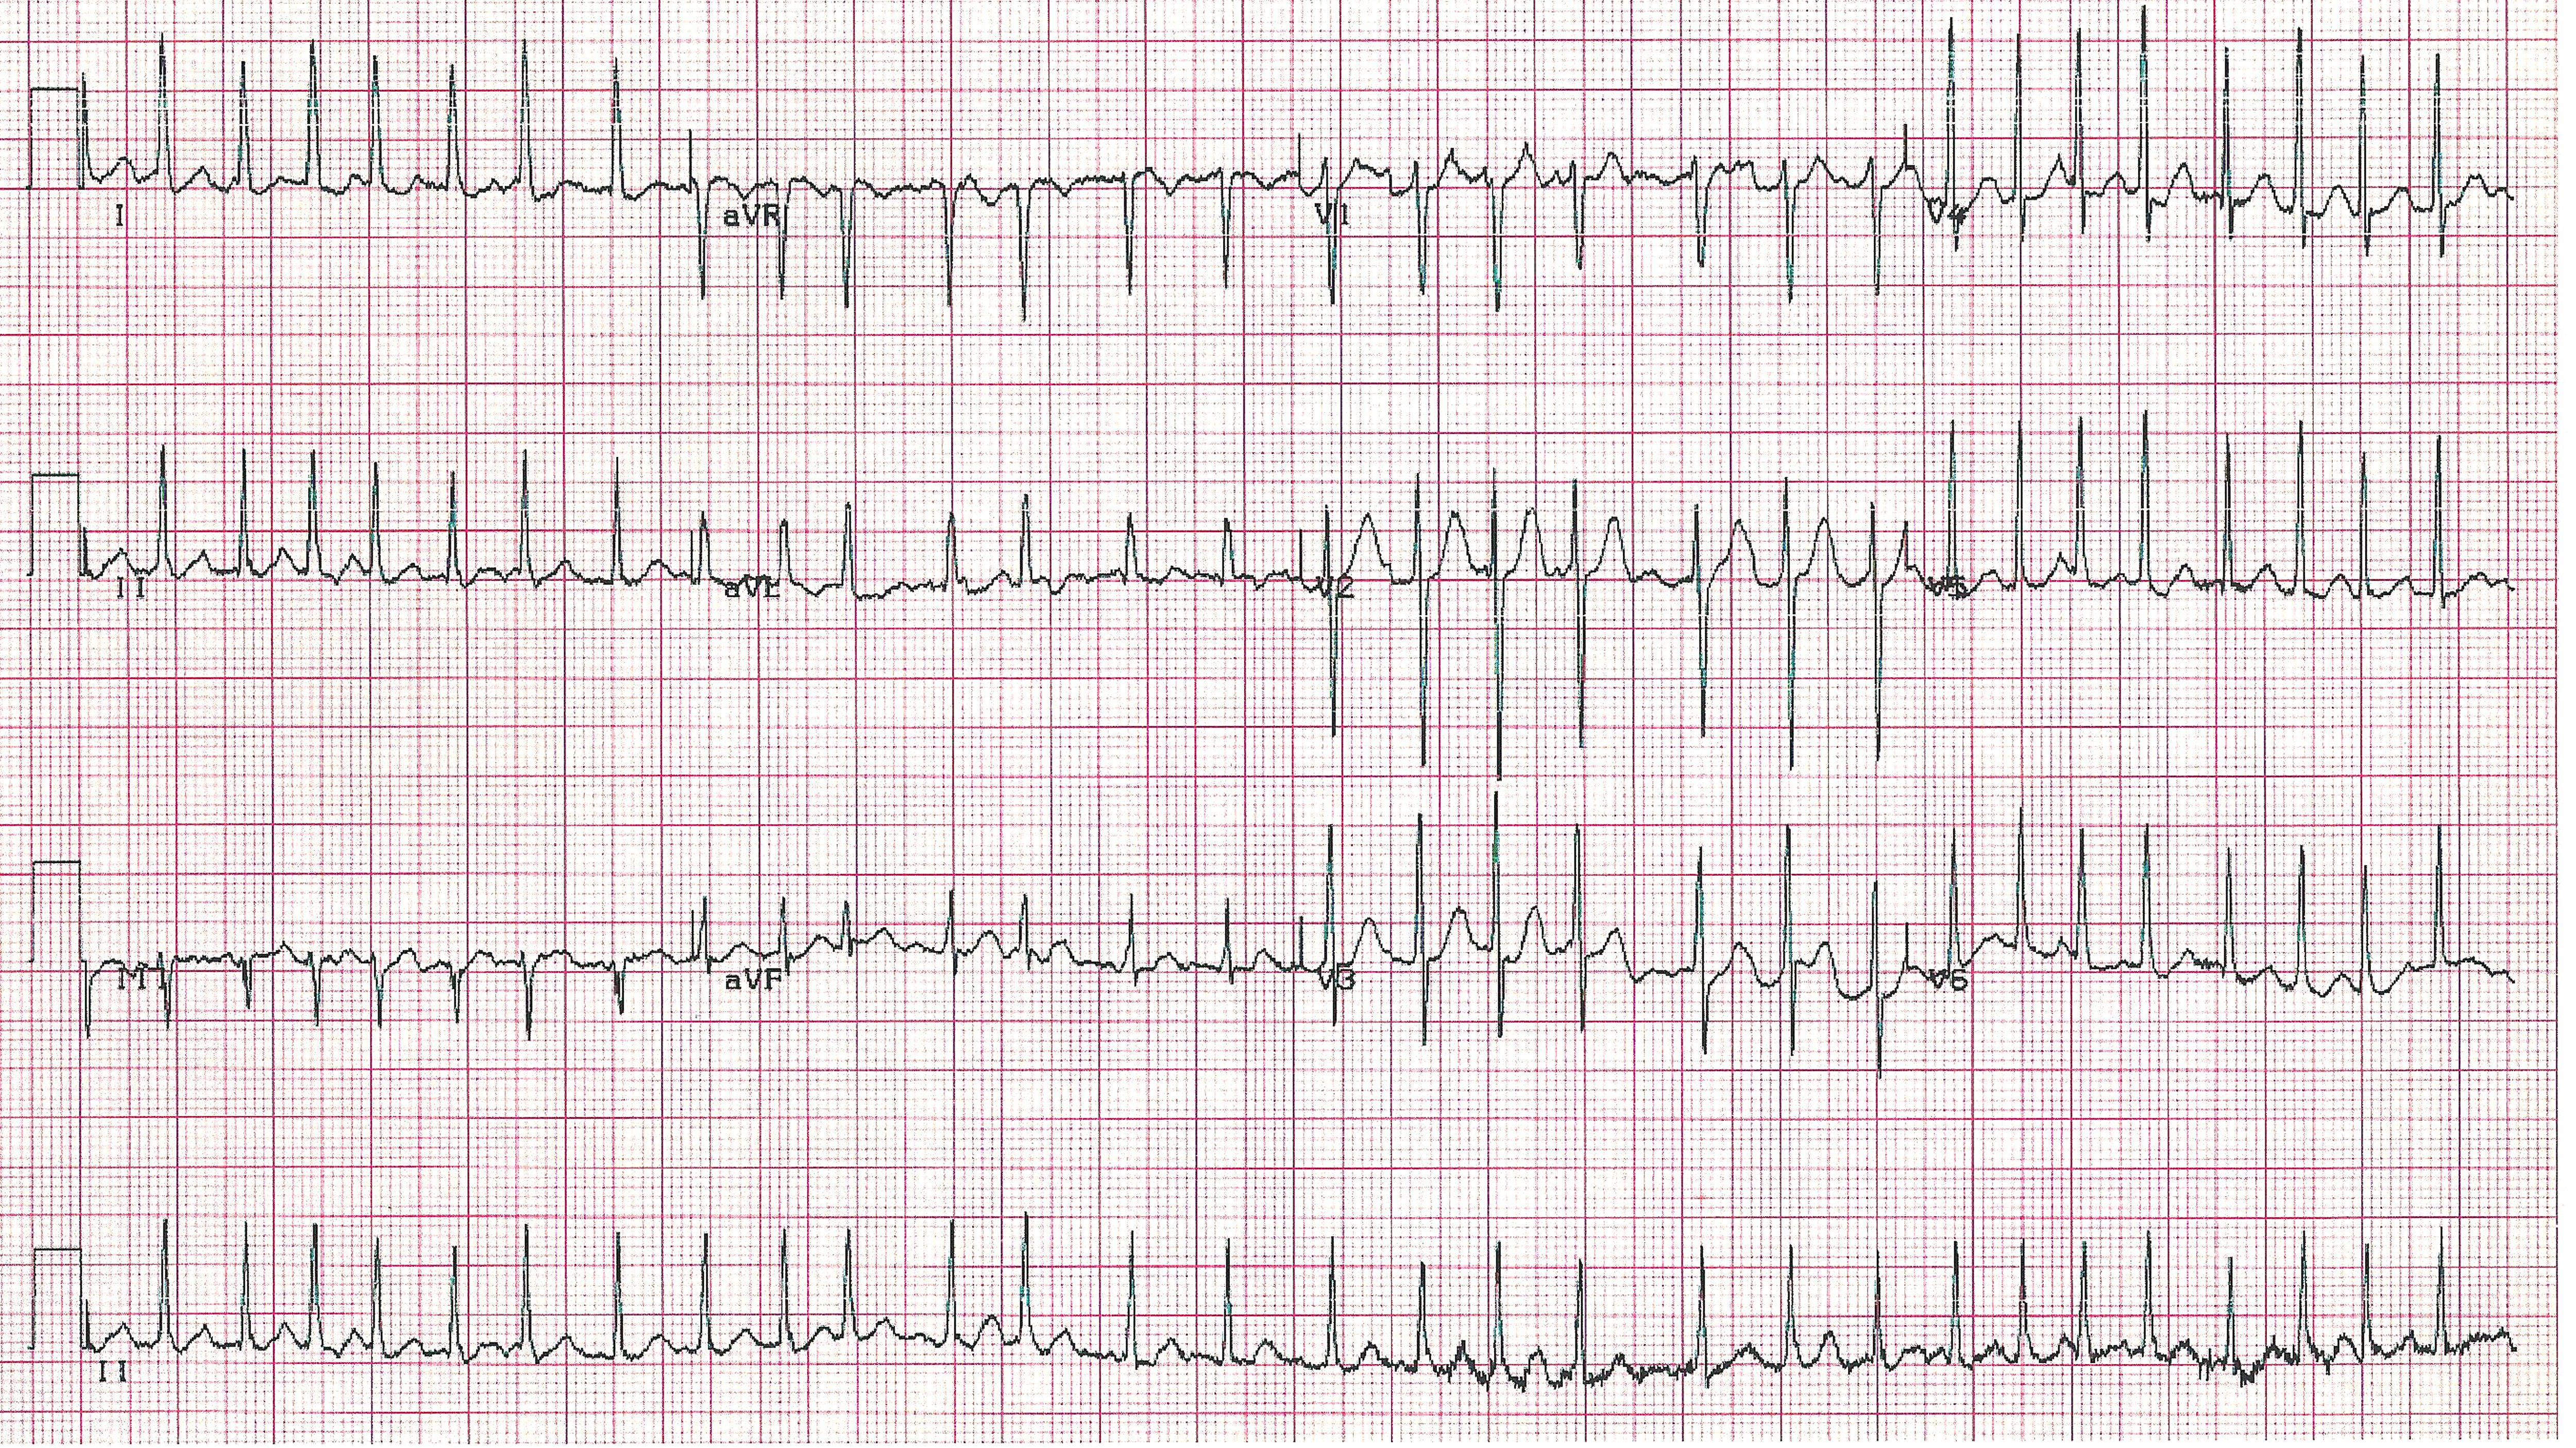 How to Manage Patients with Atrial Fibrillation and Prior